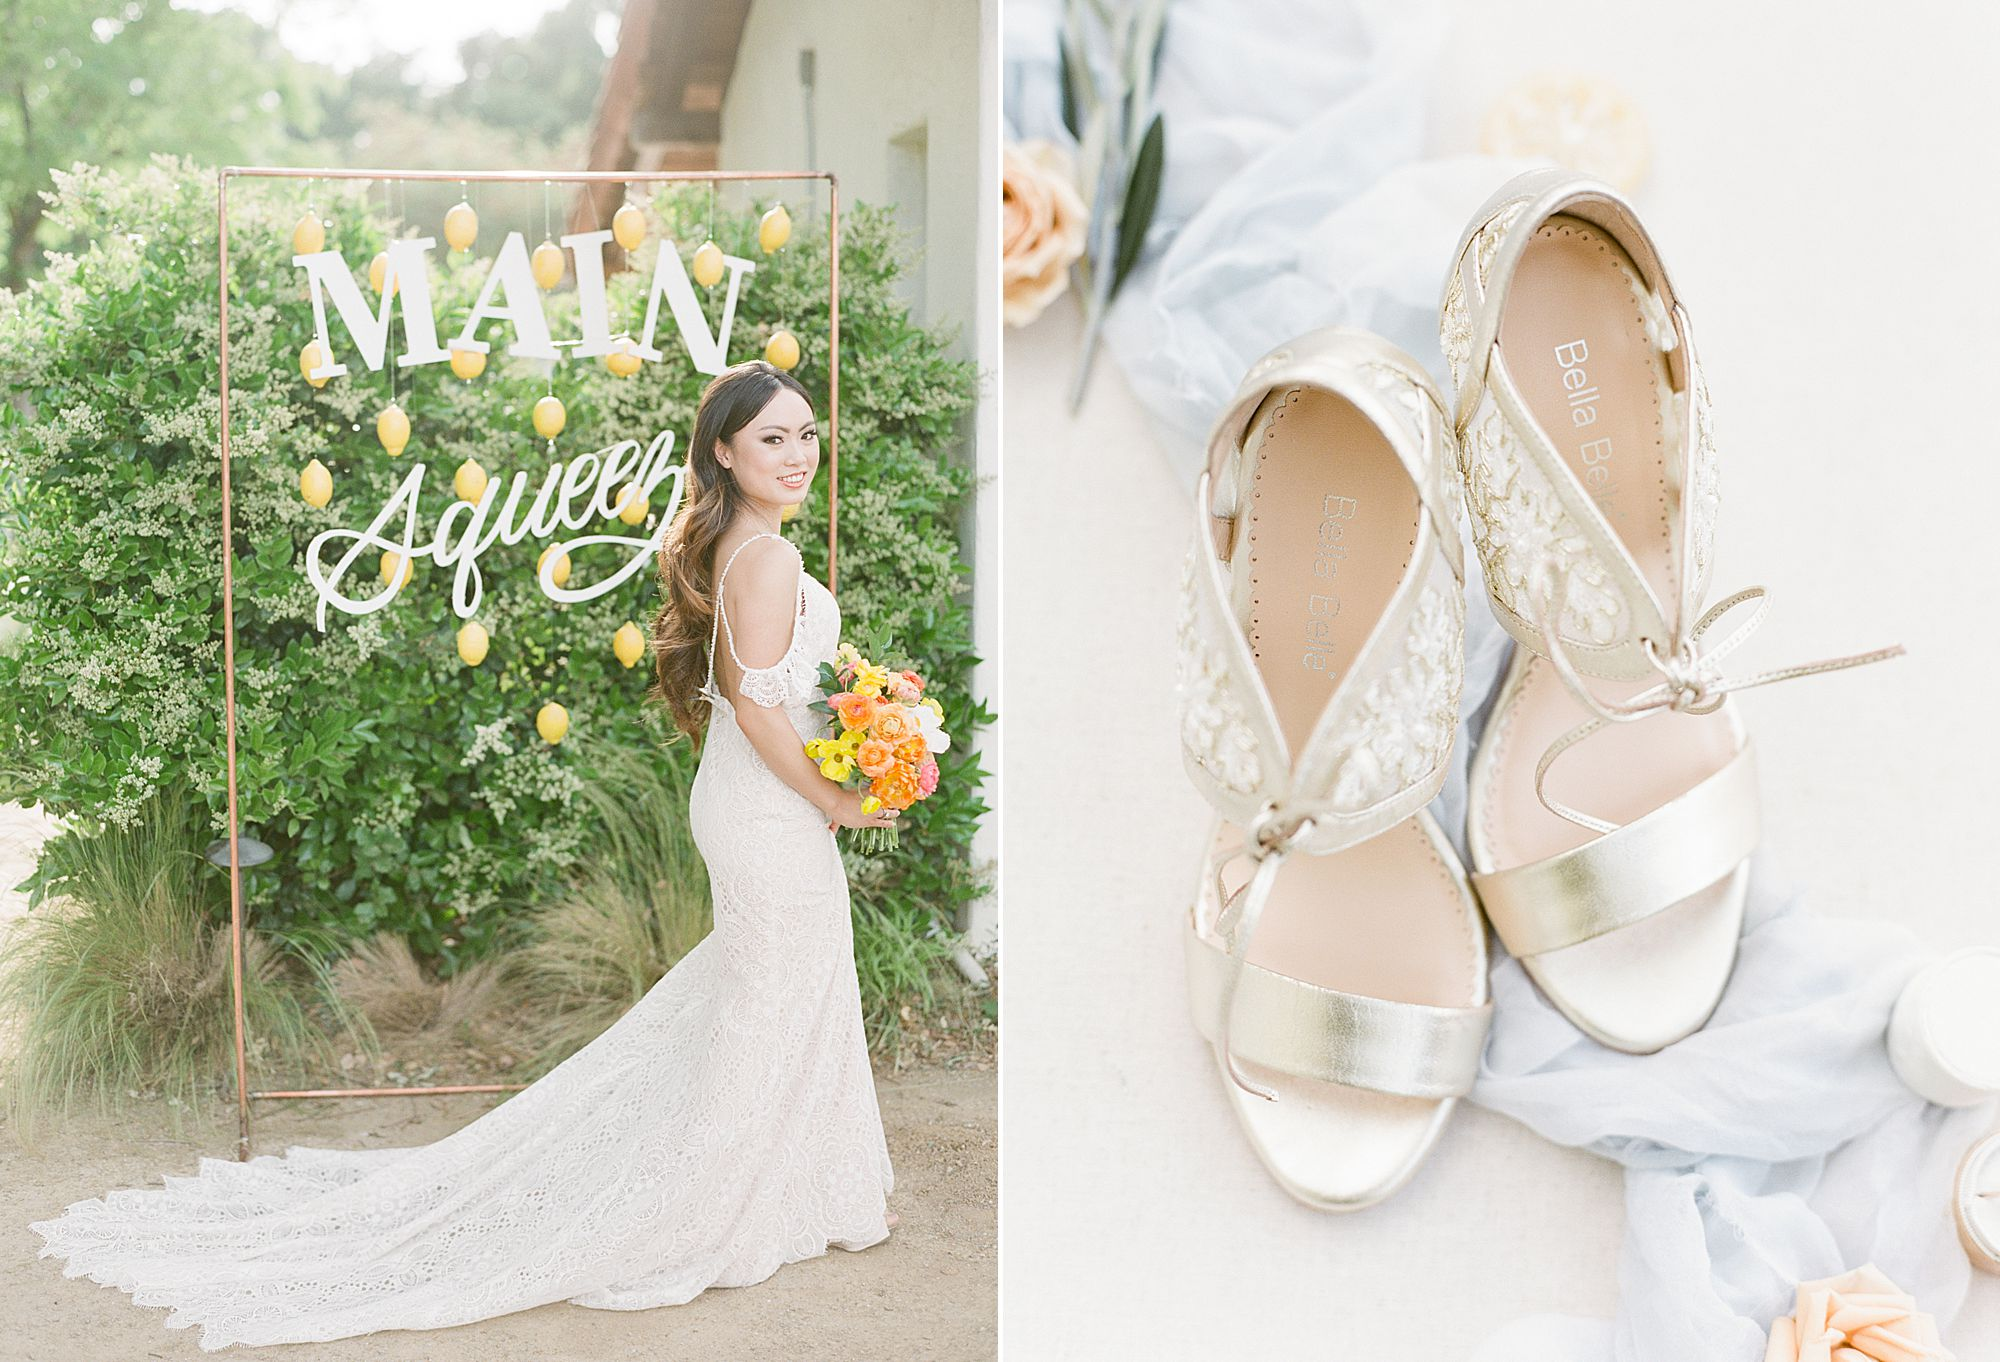 Italian Wedding Inspiration at The Maples Wedding & Event Center - Featured on Wedding Chicks - Ashley Baumgartner - Sacramento Wedding Phtoographer_0014.jpg